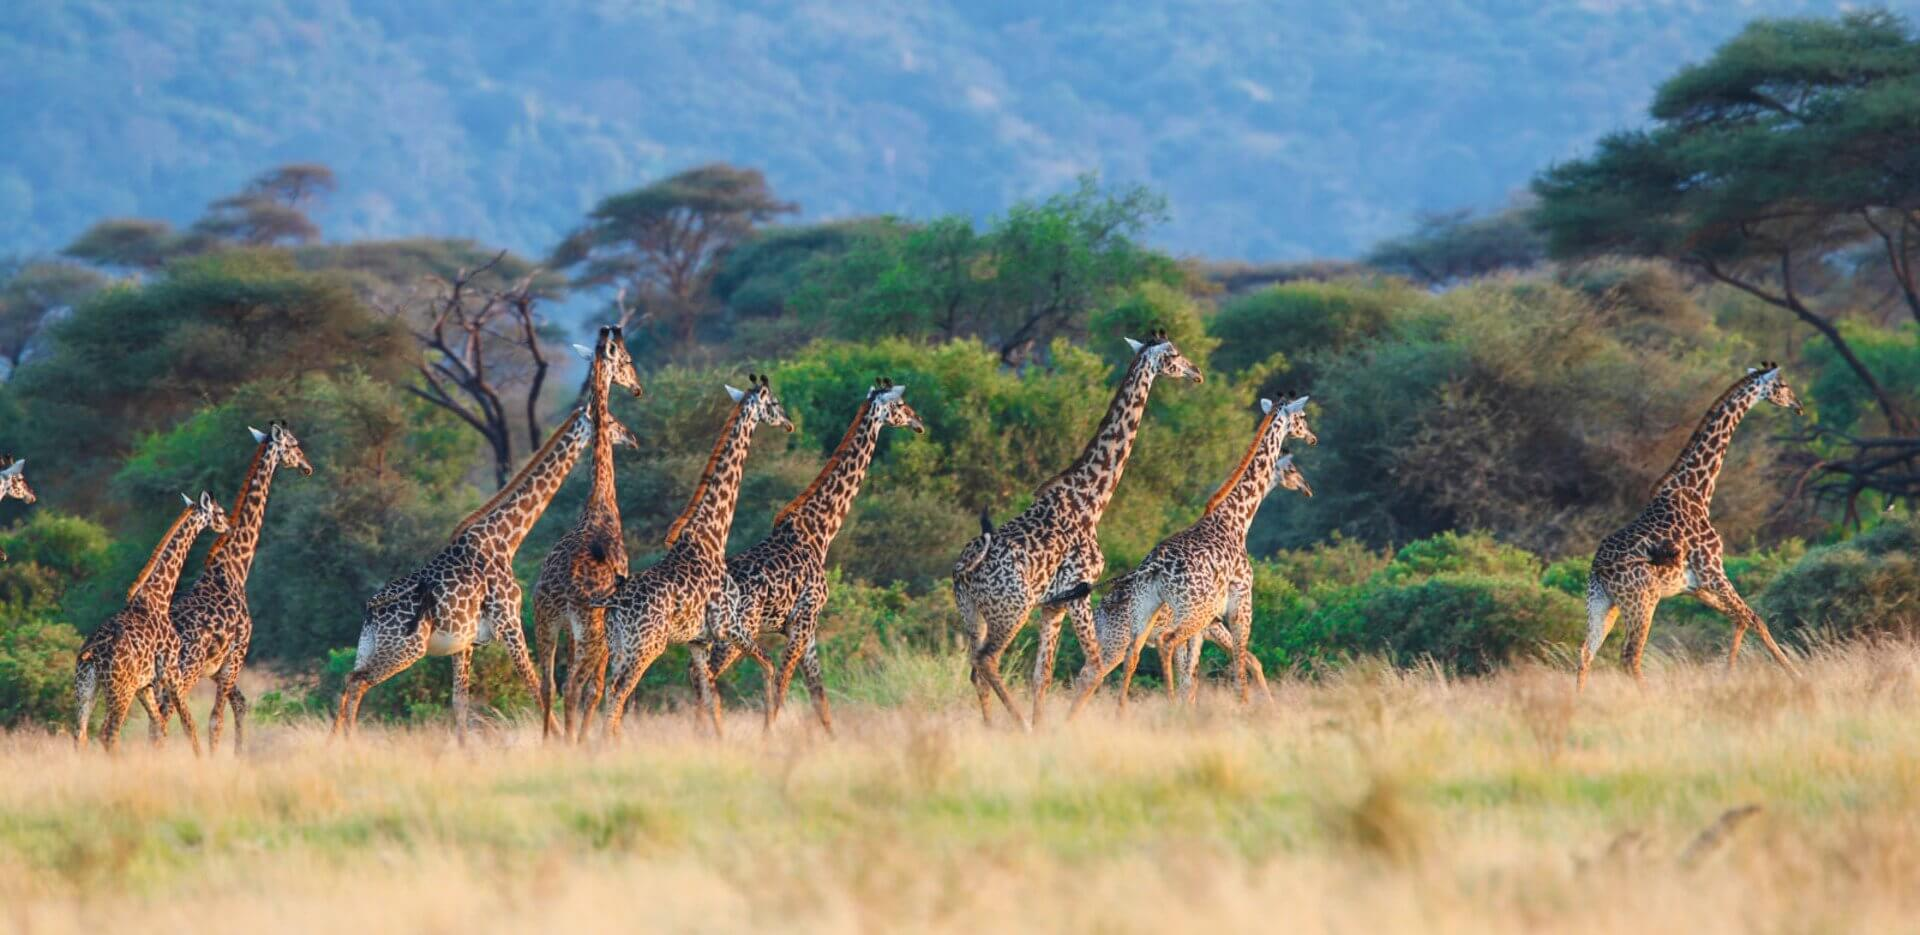 Northern Tanzania is abundant with wildlife